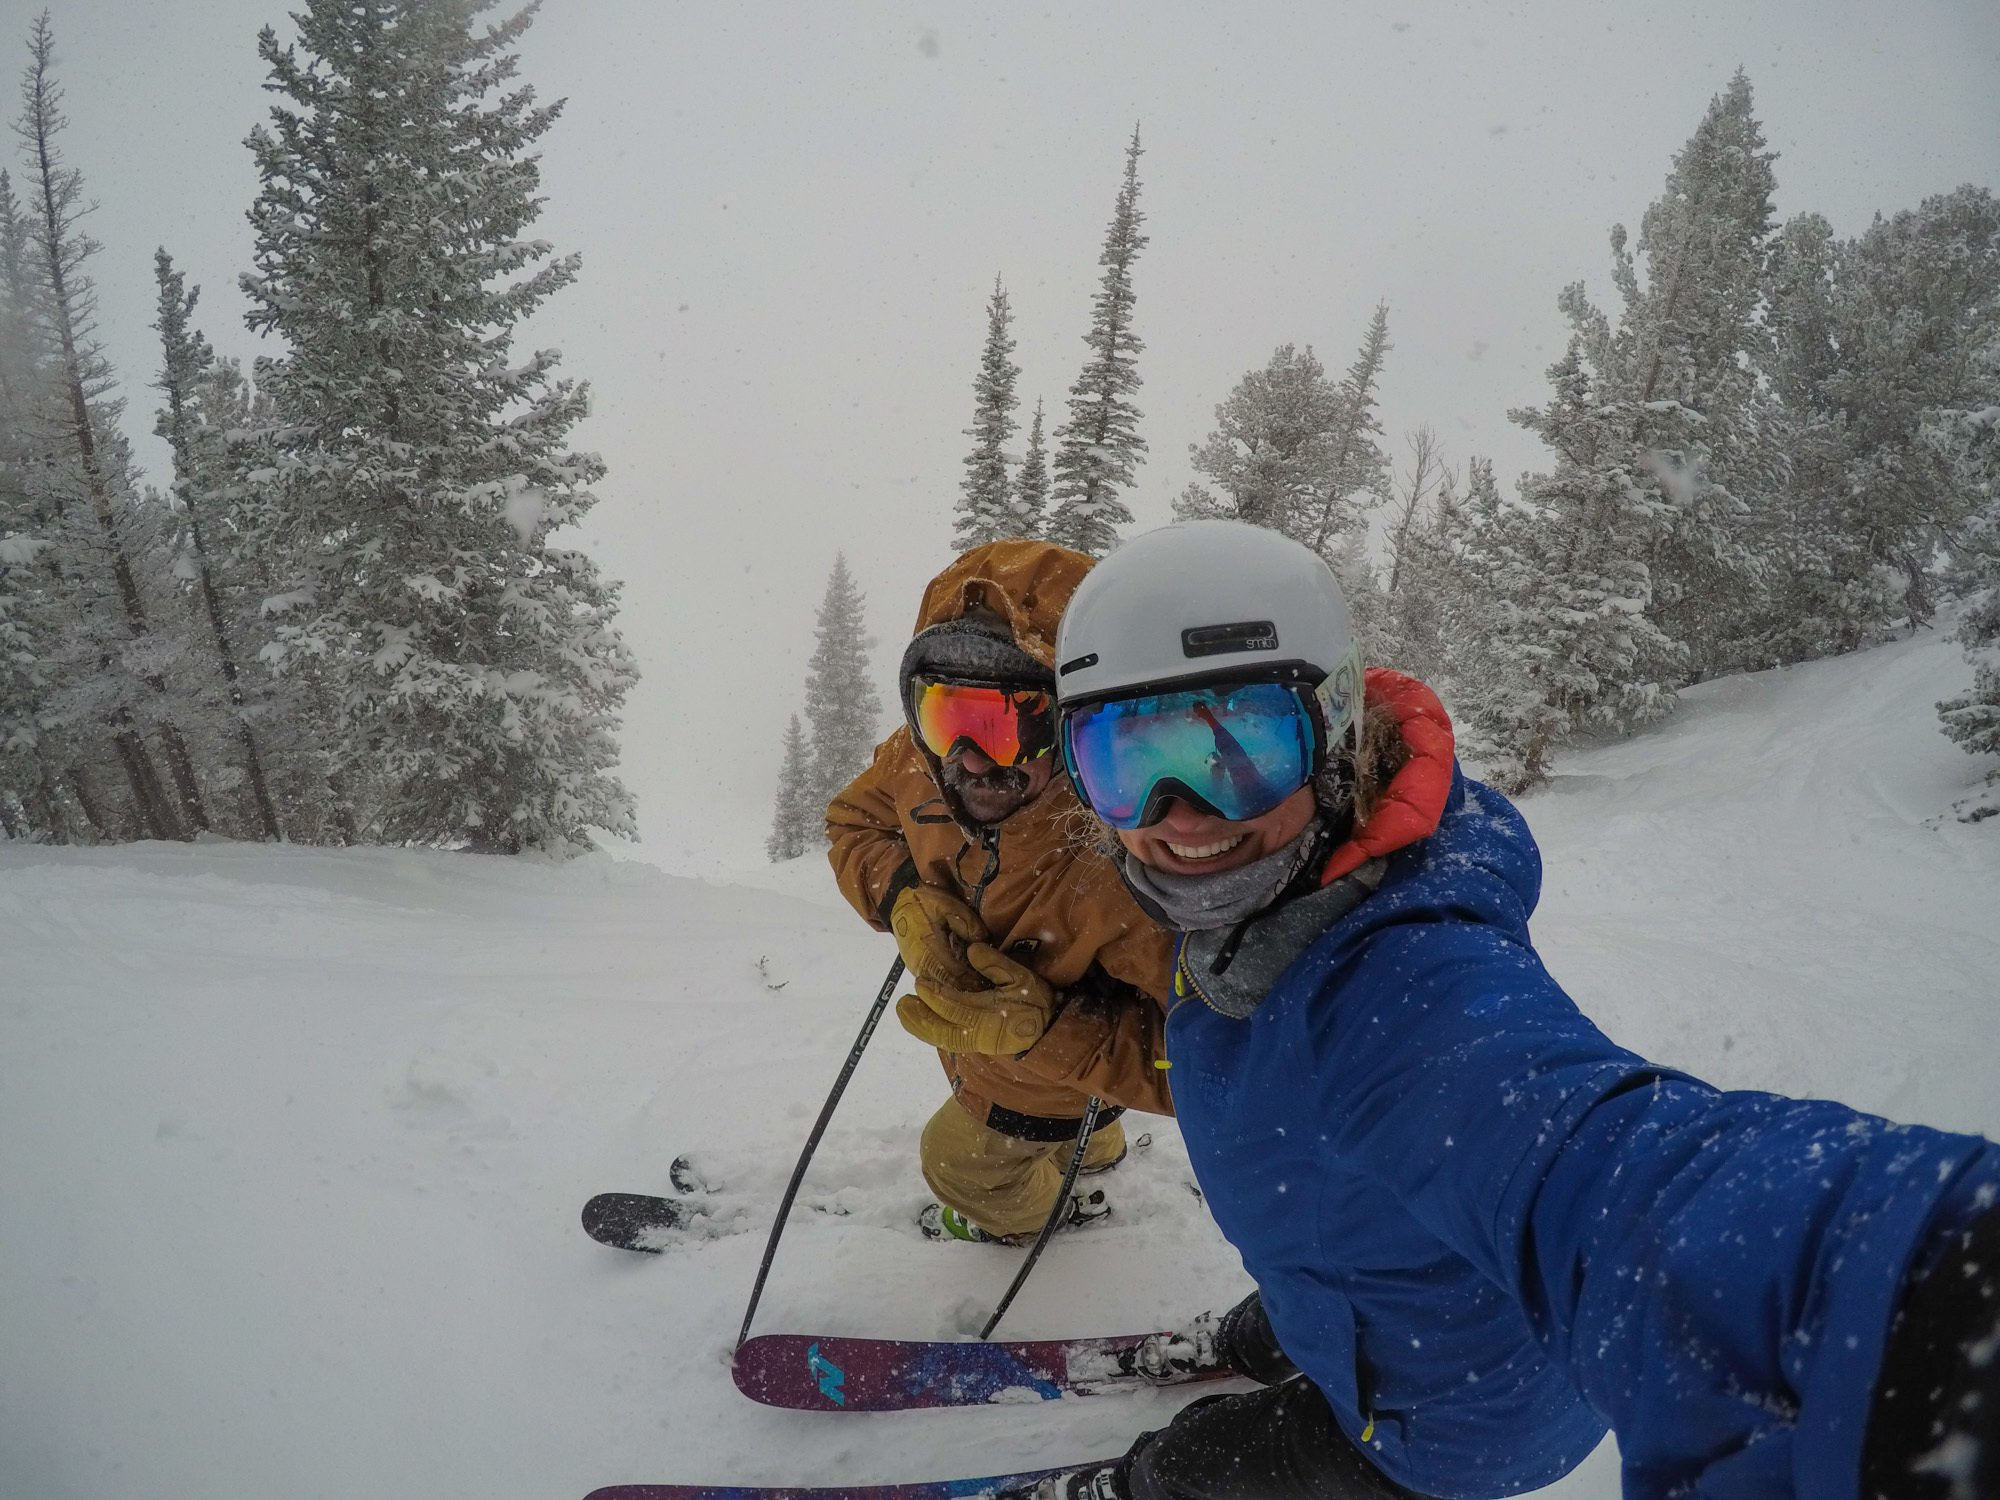 Alta Ski Area // Check out this 7-day Mountain Collective road trip itinerary that includes 2 days of skiing at Alta-Snowbird, Jackson Hole & Sun Valley, plus recommendations for where to stay & eat on your vacation.